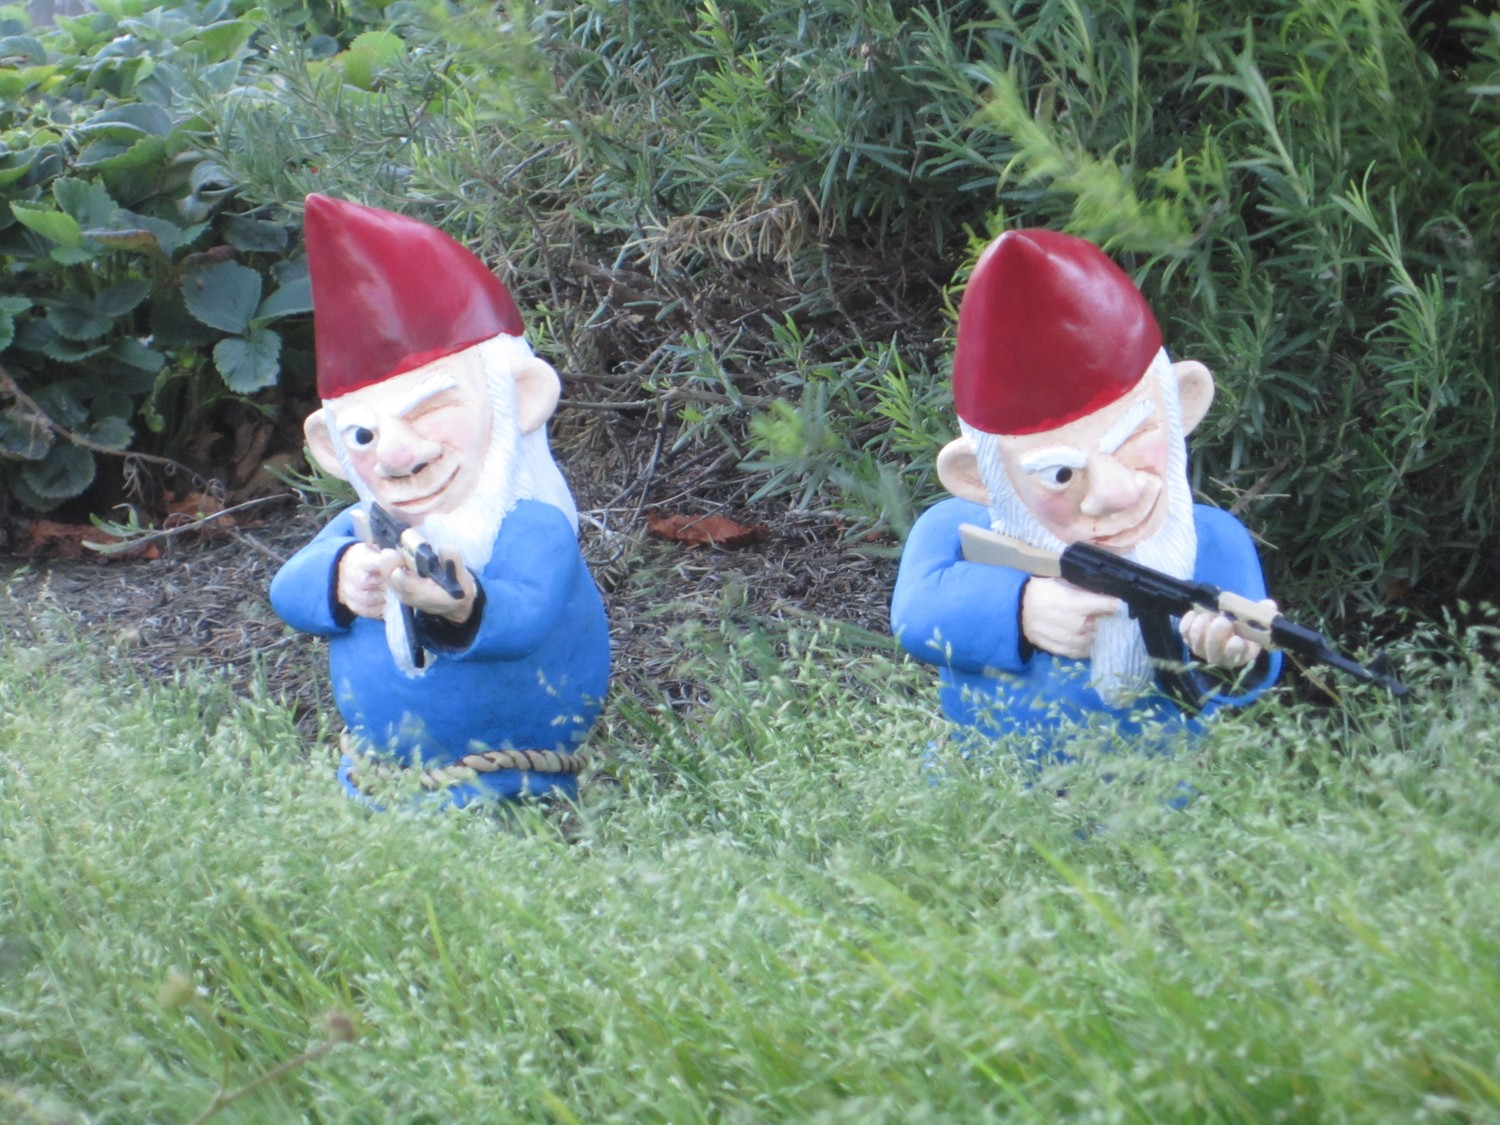 Gnome In Garden: Speak Of The Devil: A Day In The Life Of A Garden Gnome